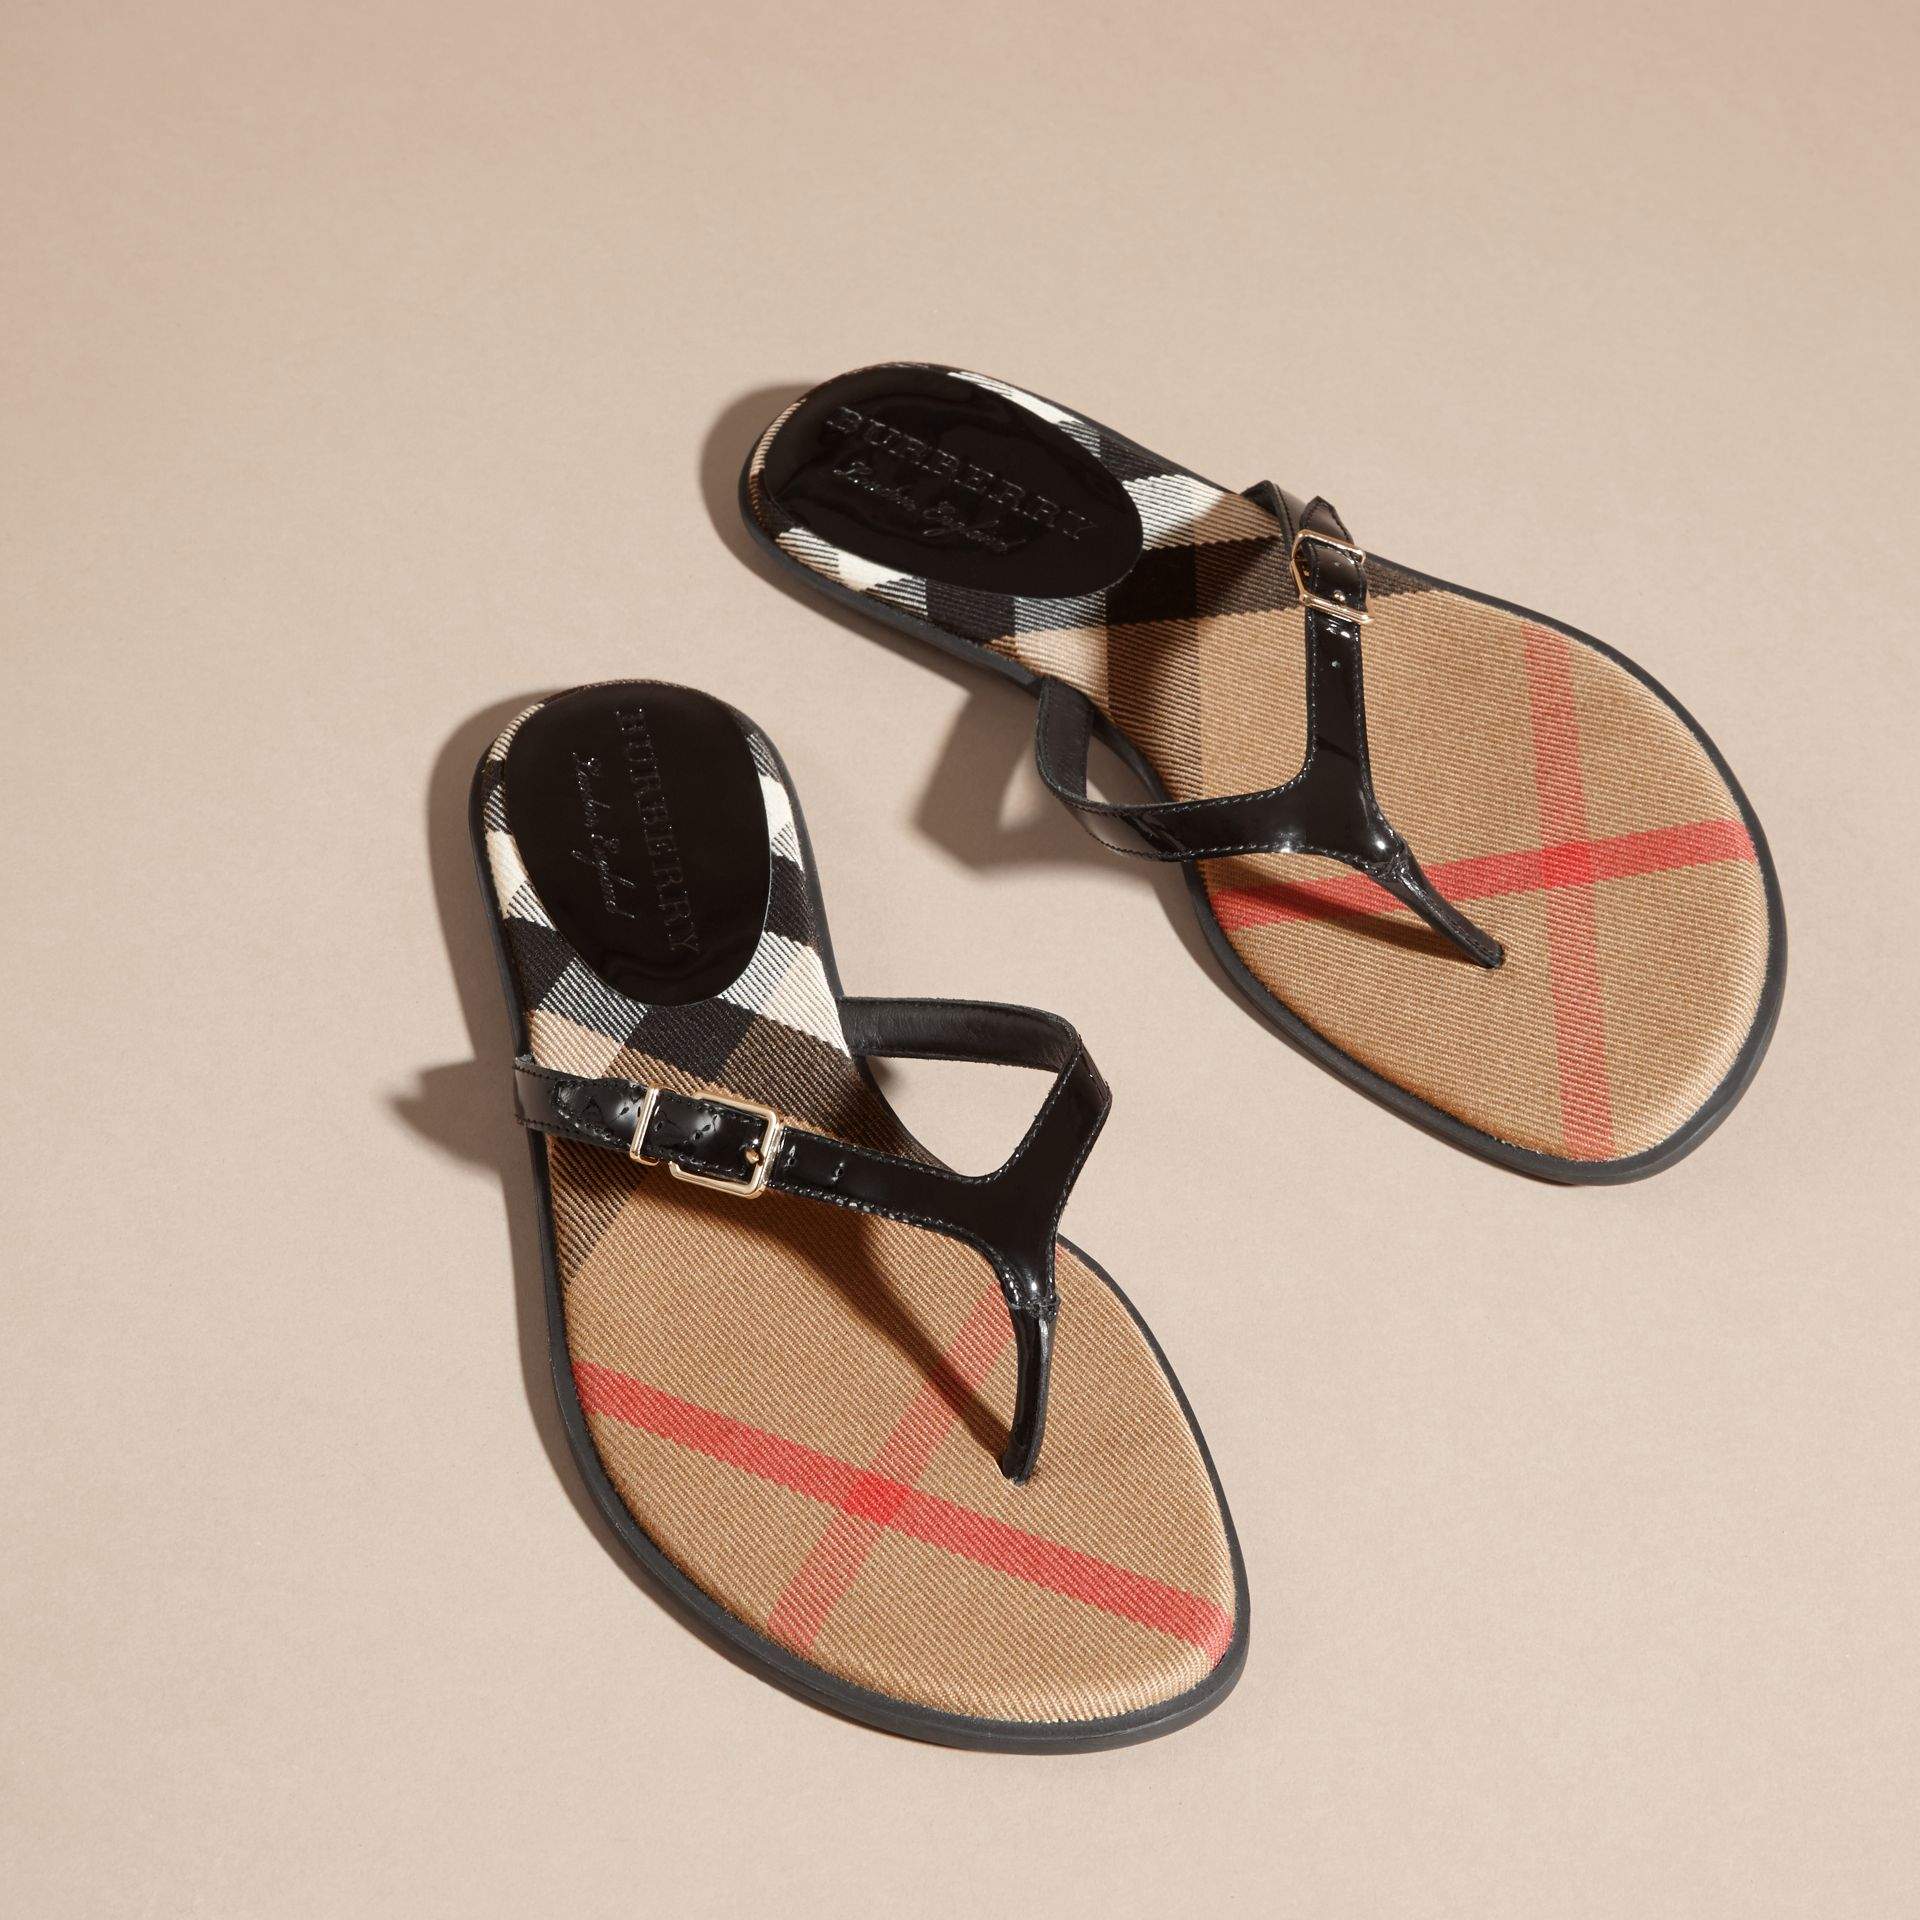 House Check and Patent Leather Sandals in Black - Women | Burberry - gallery image 3